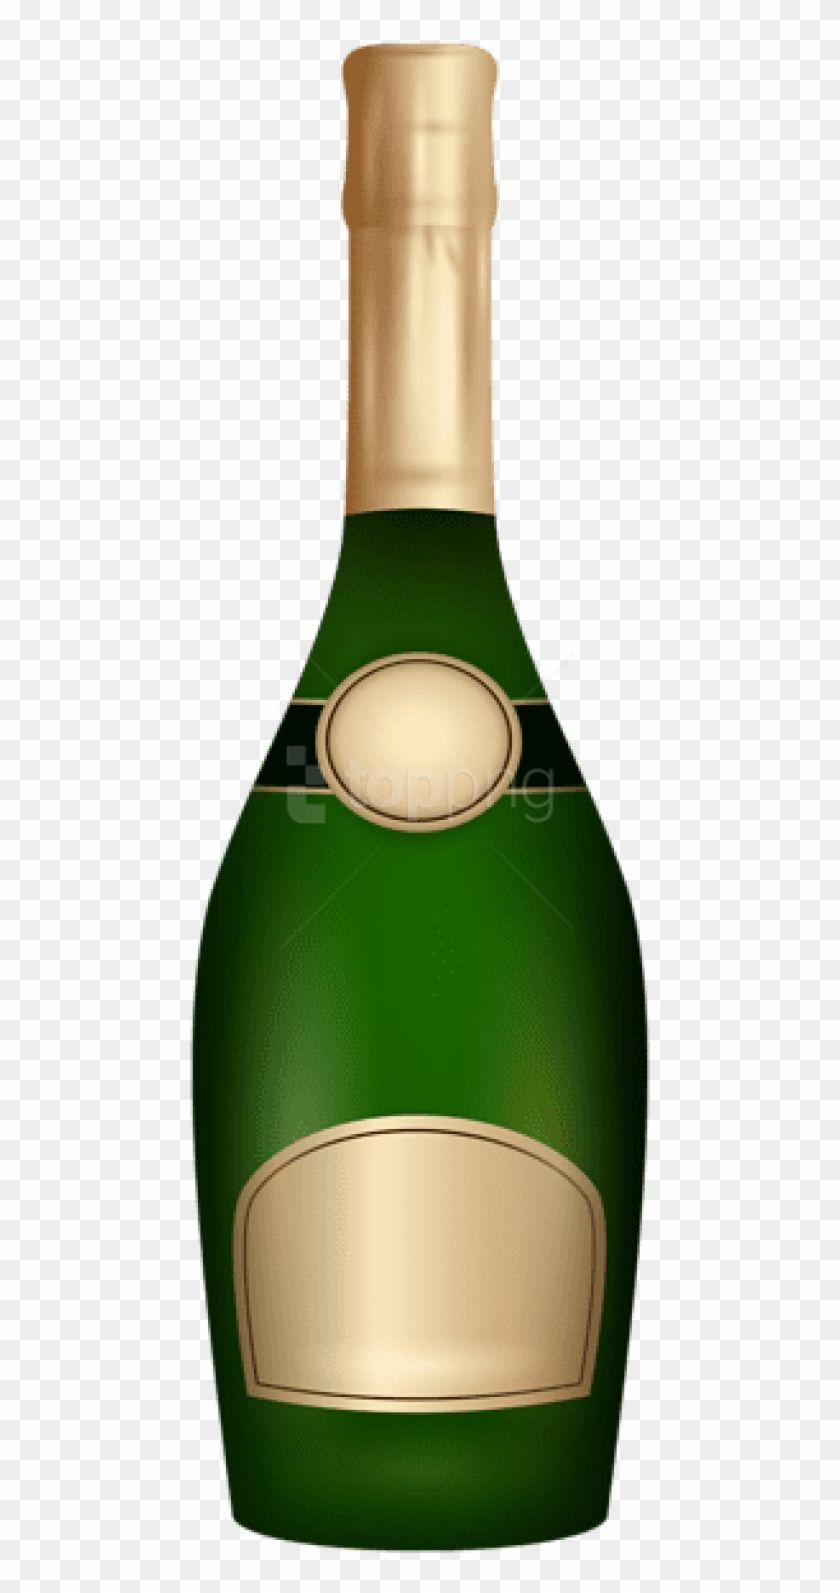 Google Image Result For Https Www Pngfind Com Pngs M 185 1852085 Free Png Download Champagne Bottle Png Images Bac Champagne Bottle Bottle Free Png Downloads